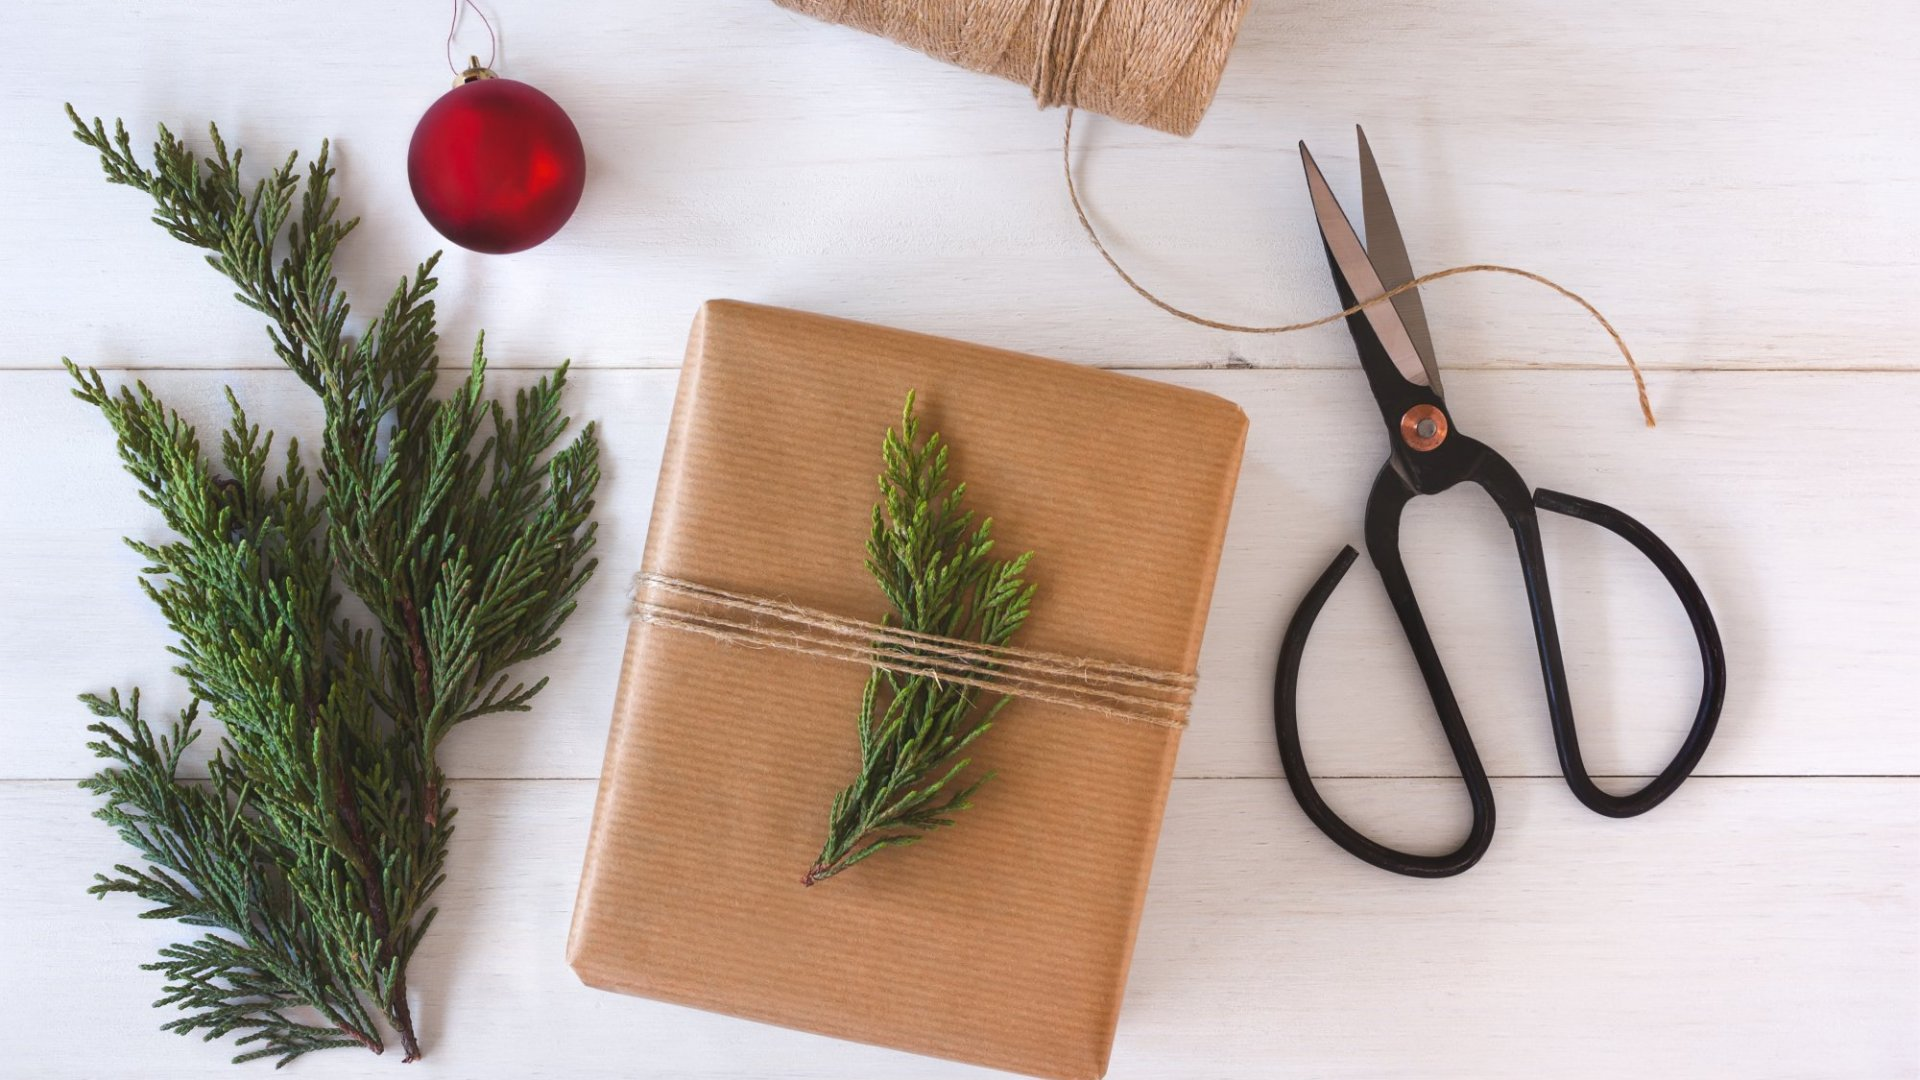 25 Perfectly Designed Green Products (Just in Time for the Holidays)